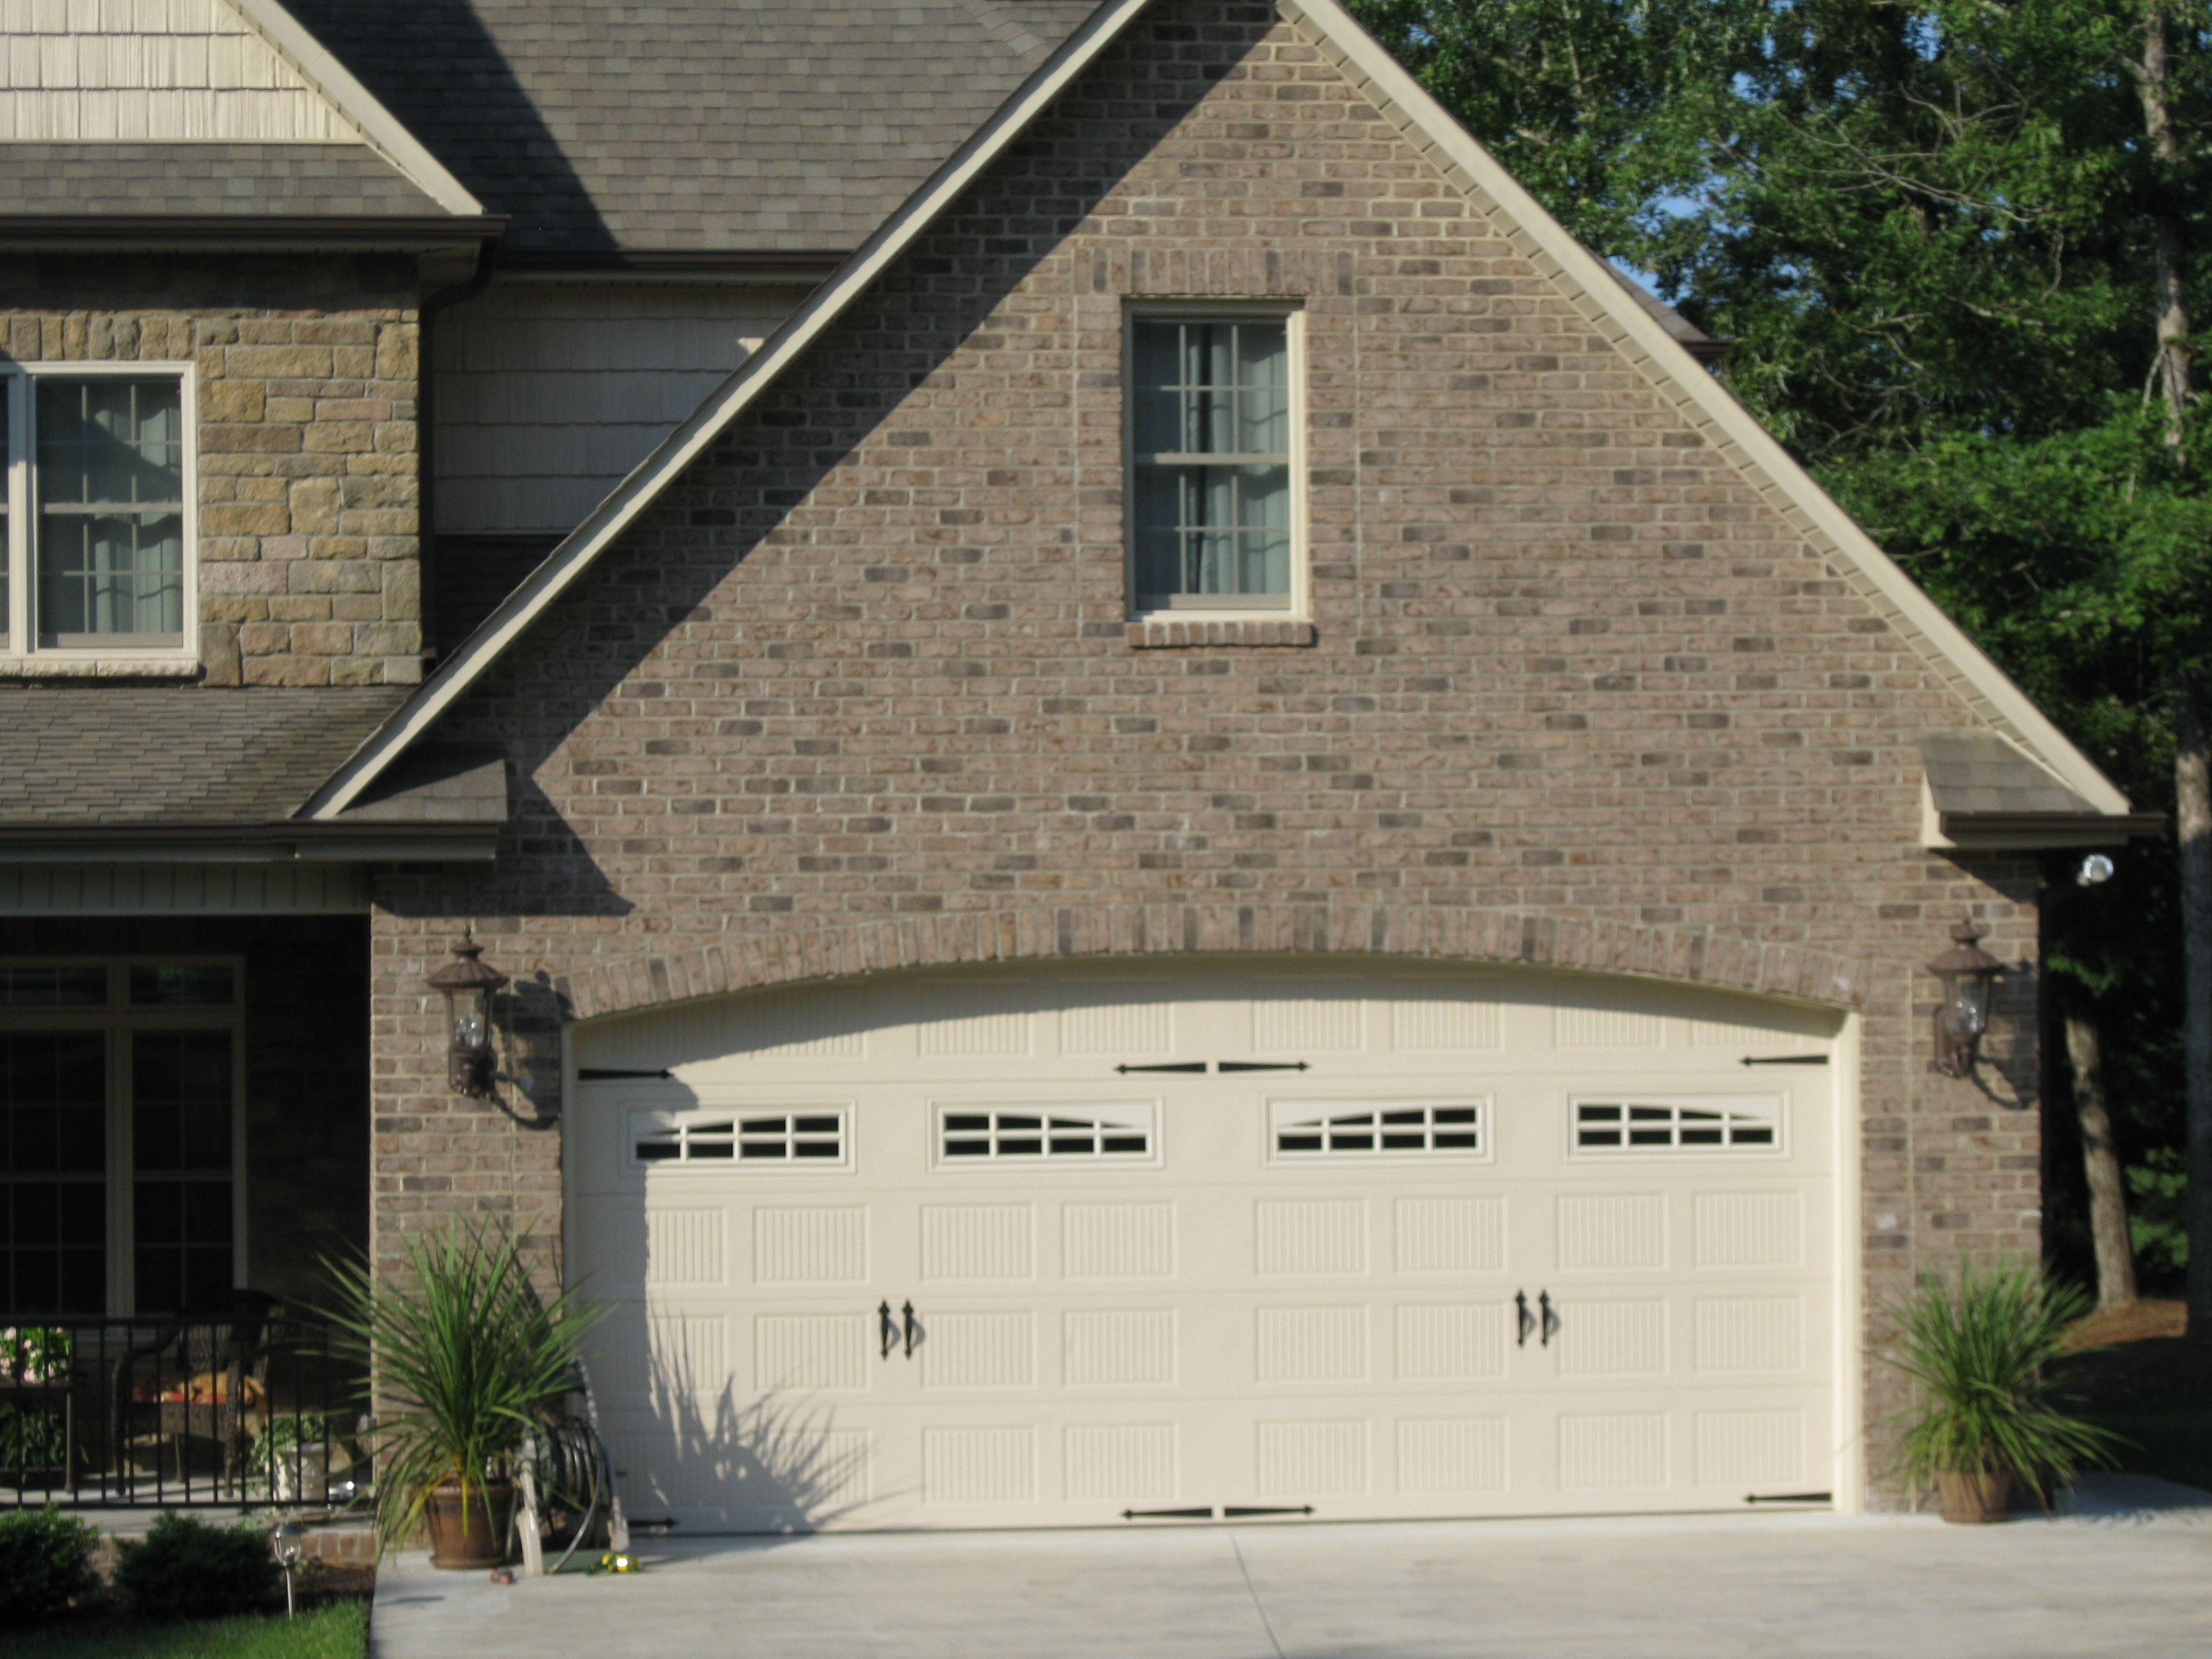 Pin by Brick Industry Association - Southeast Region on Garages